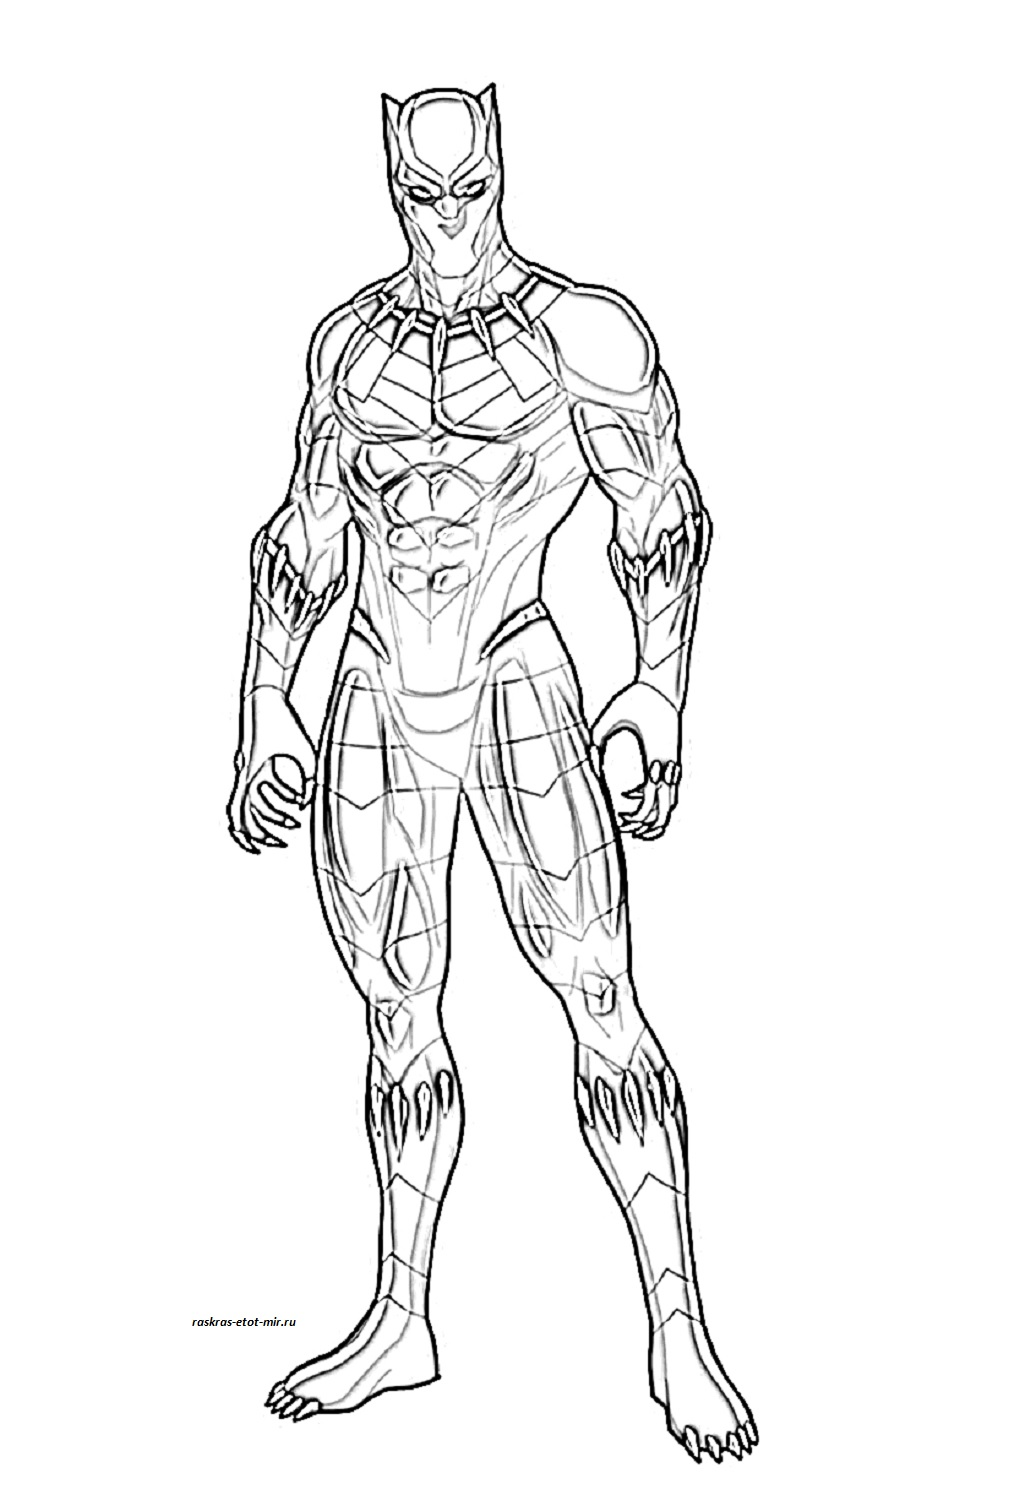 coloring pictures of panthers download panther coloring for free designlooter 2020 panthers coloring pictures of